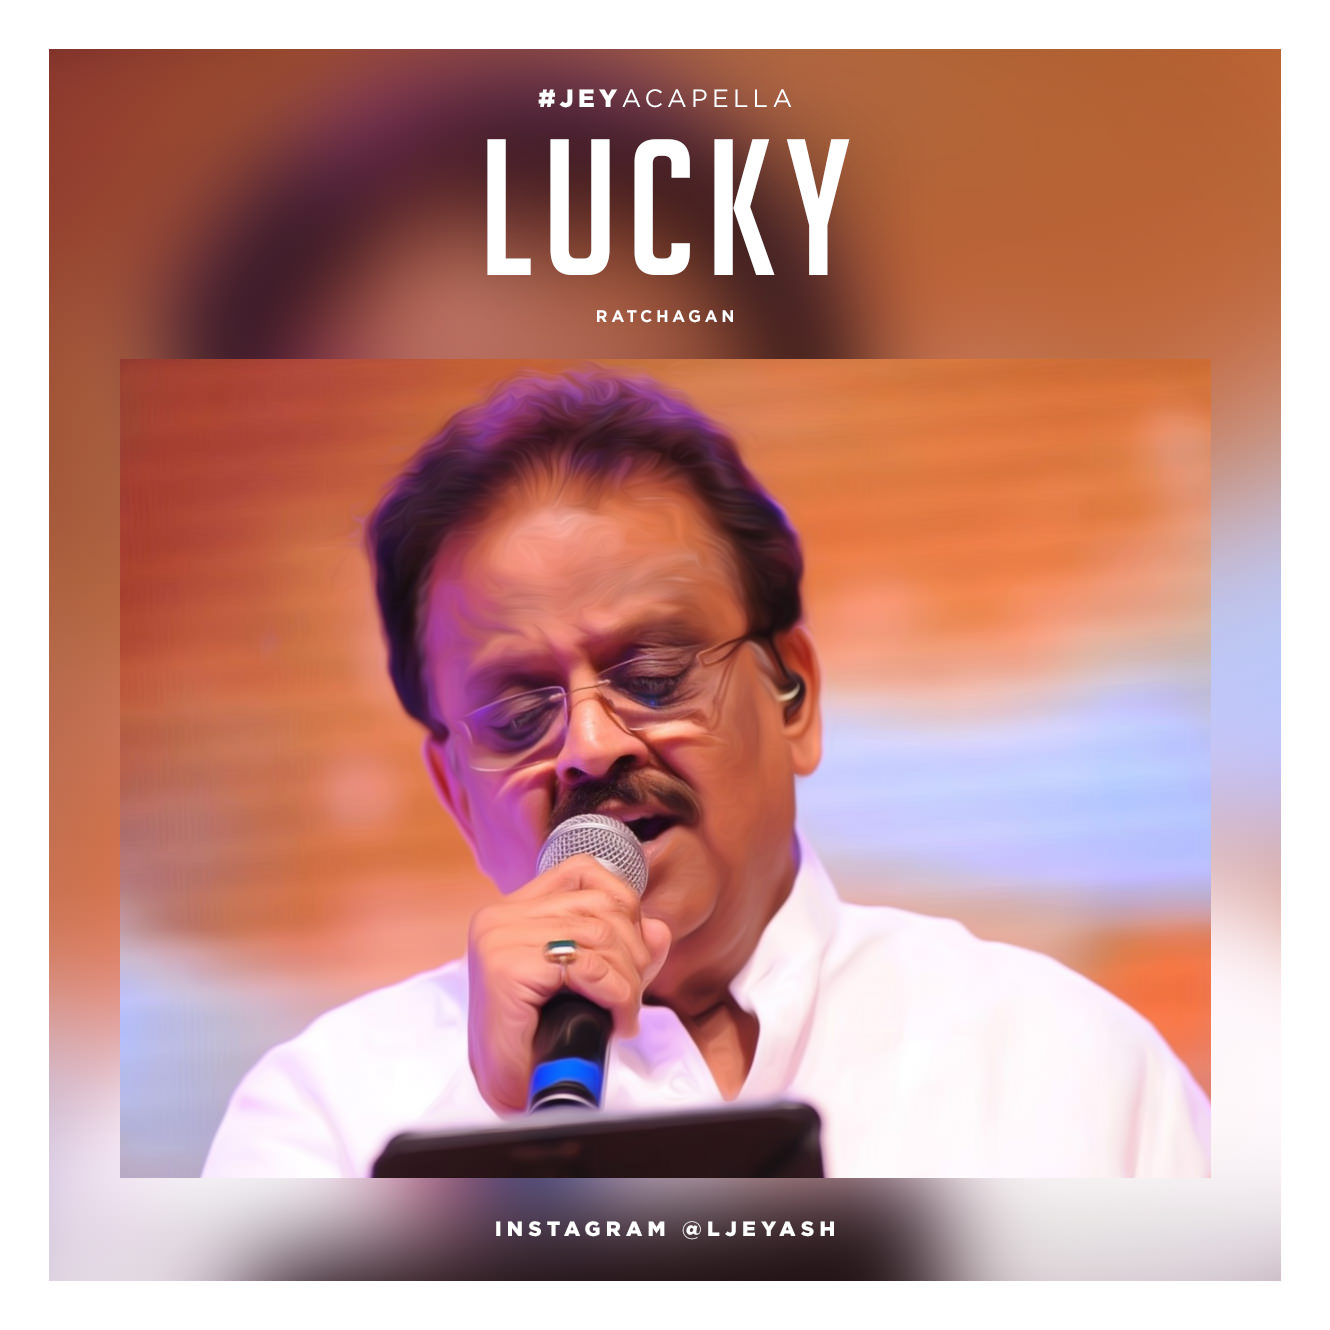 Ratchagan - Lucky.jpg